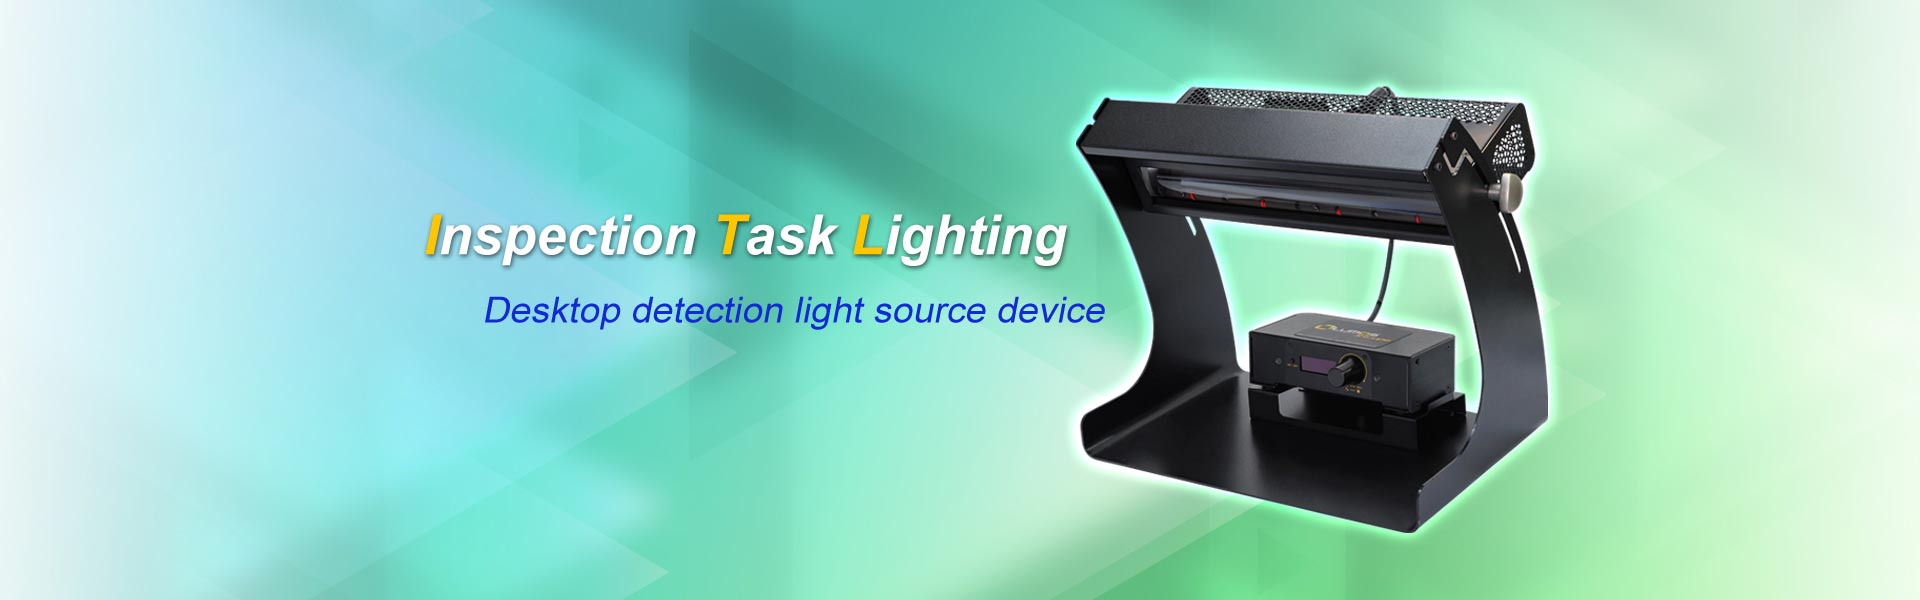 Inspection Task Lighting